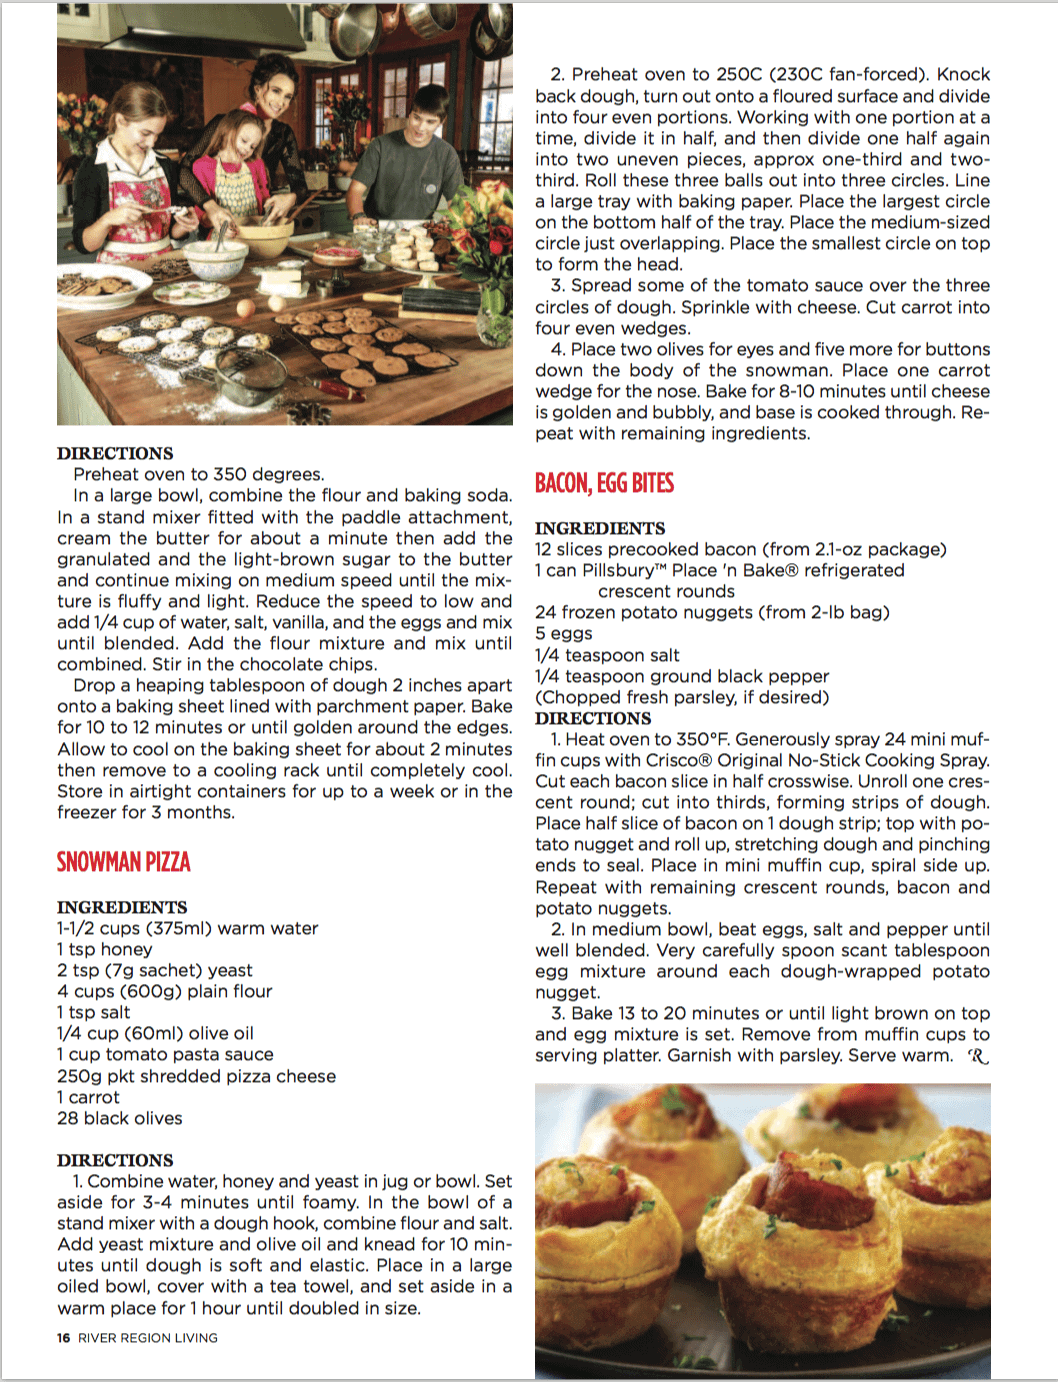 Stacy Lyn cooking in the kitchen with the kids for the holidays in River Region Living Magazine.